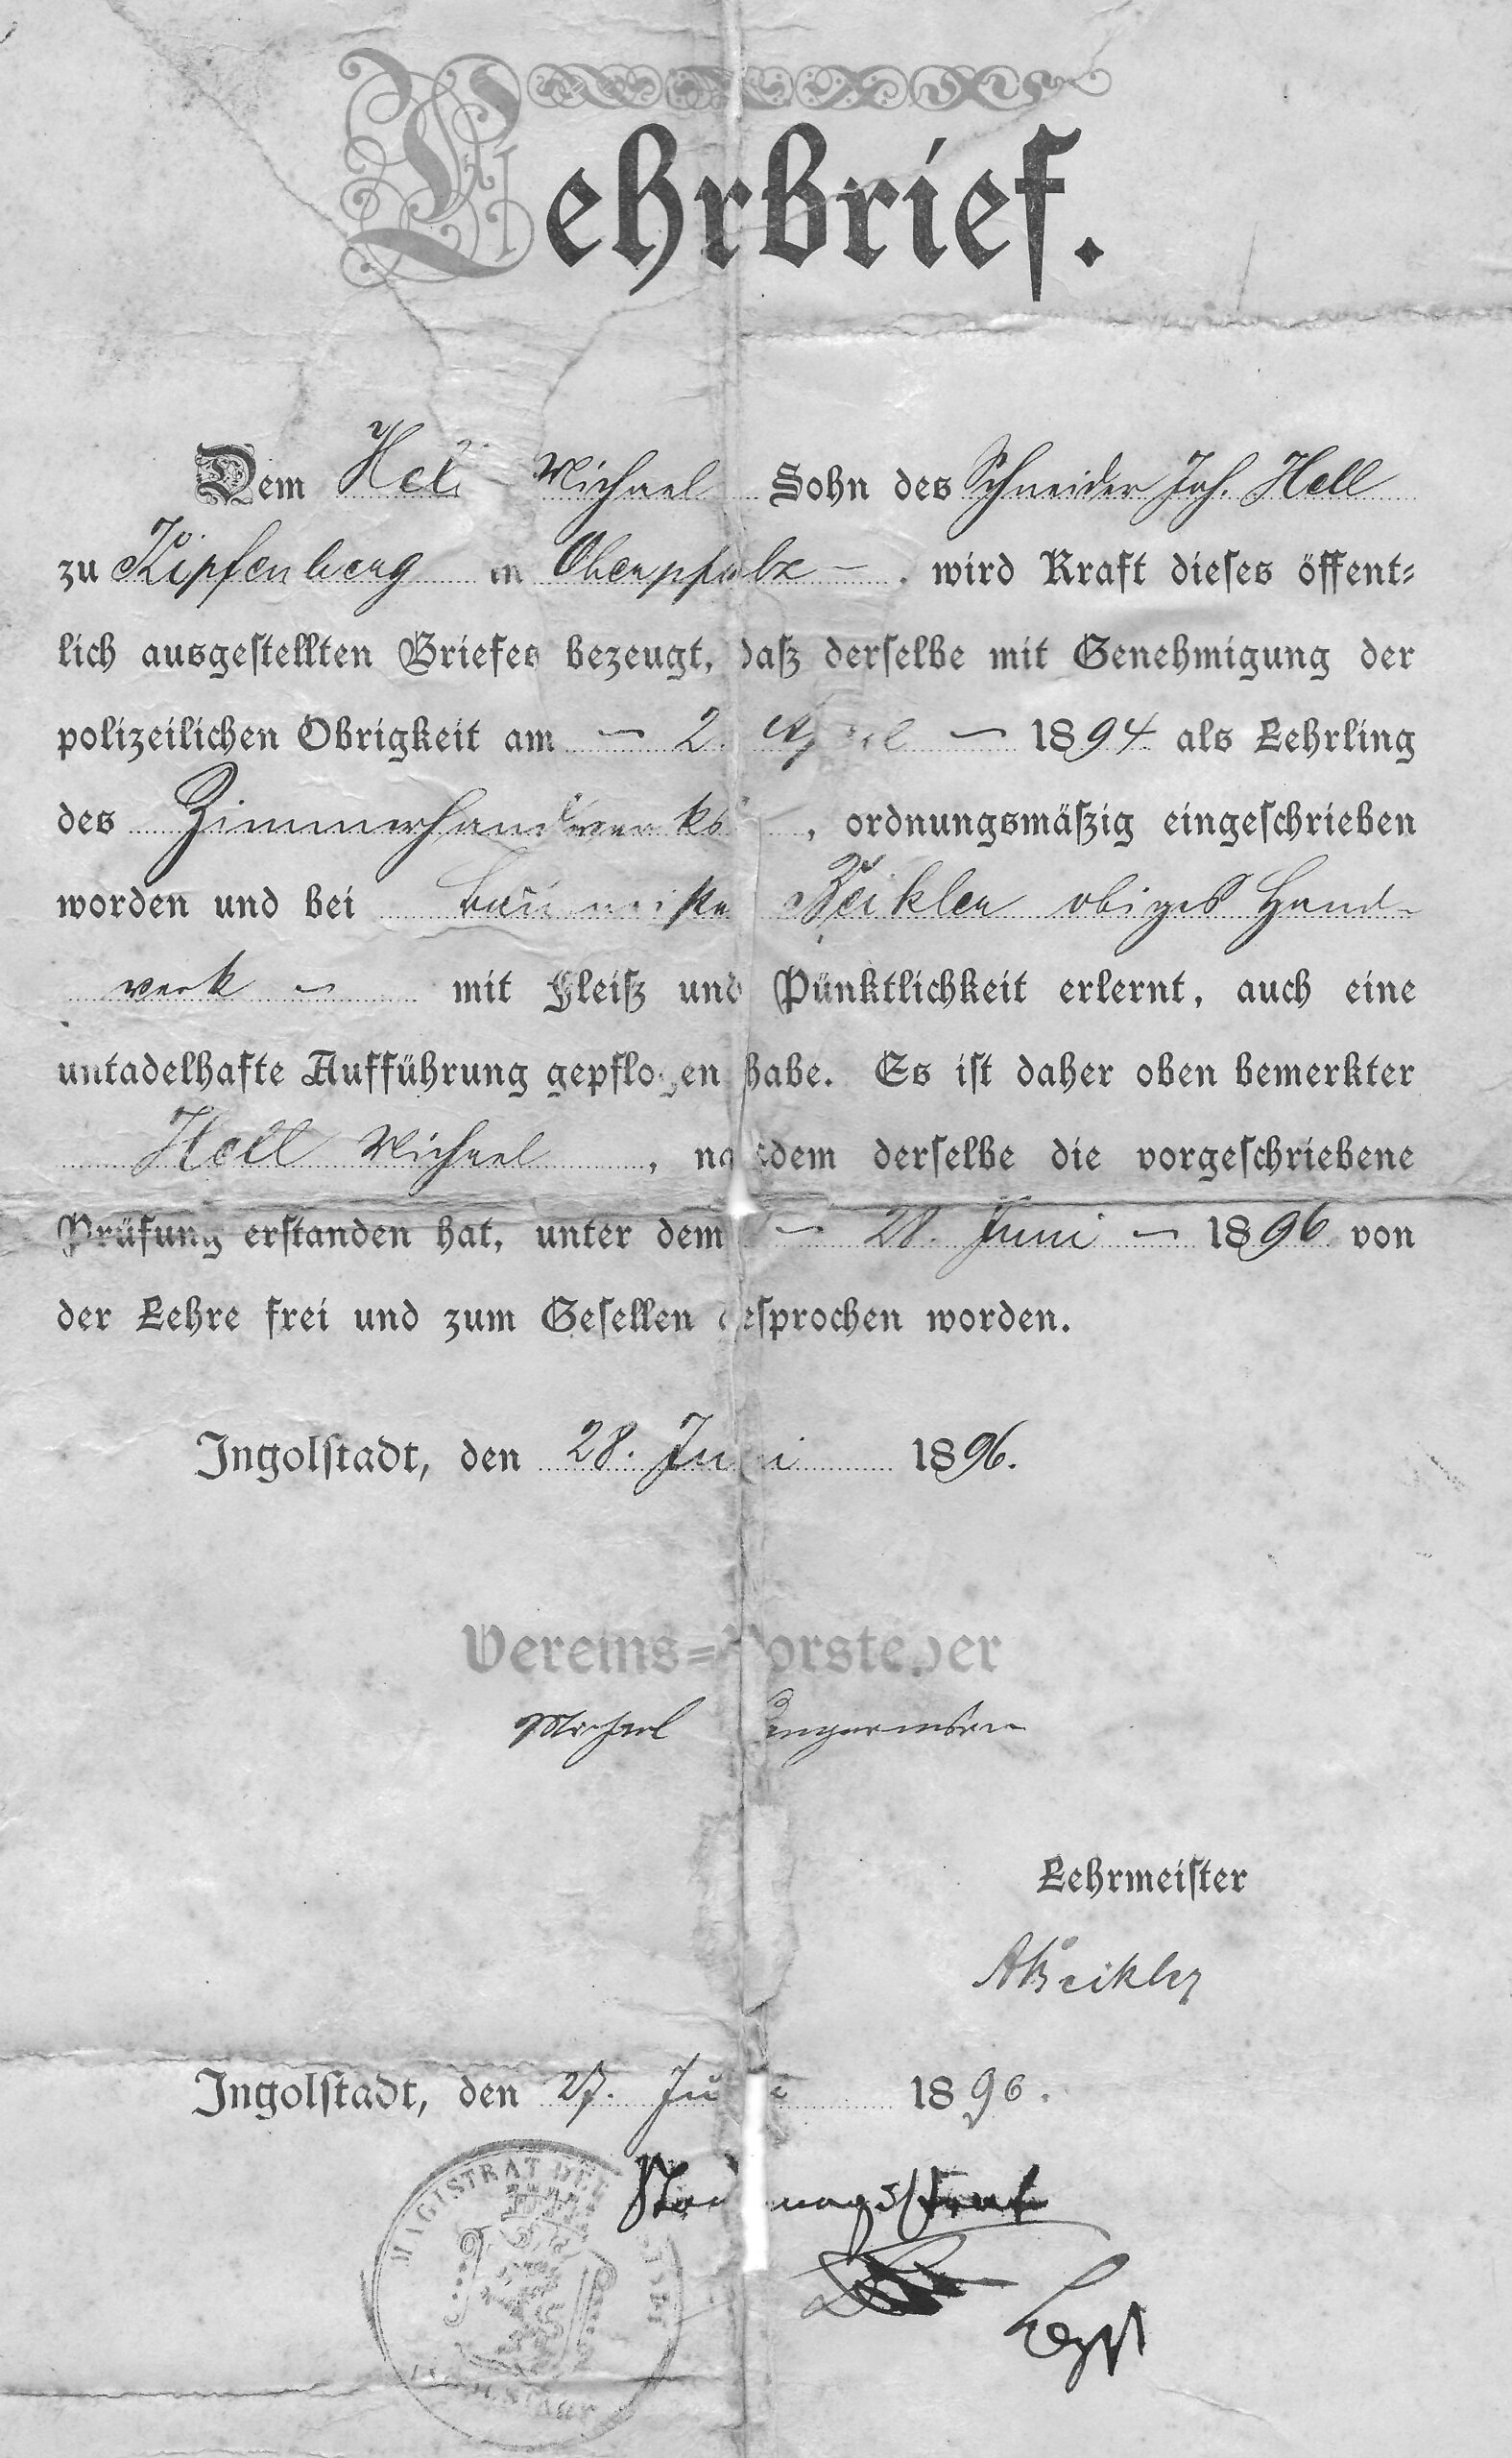 10 Hell Mich Lehrbrief 1896